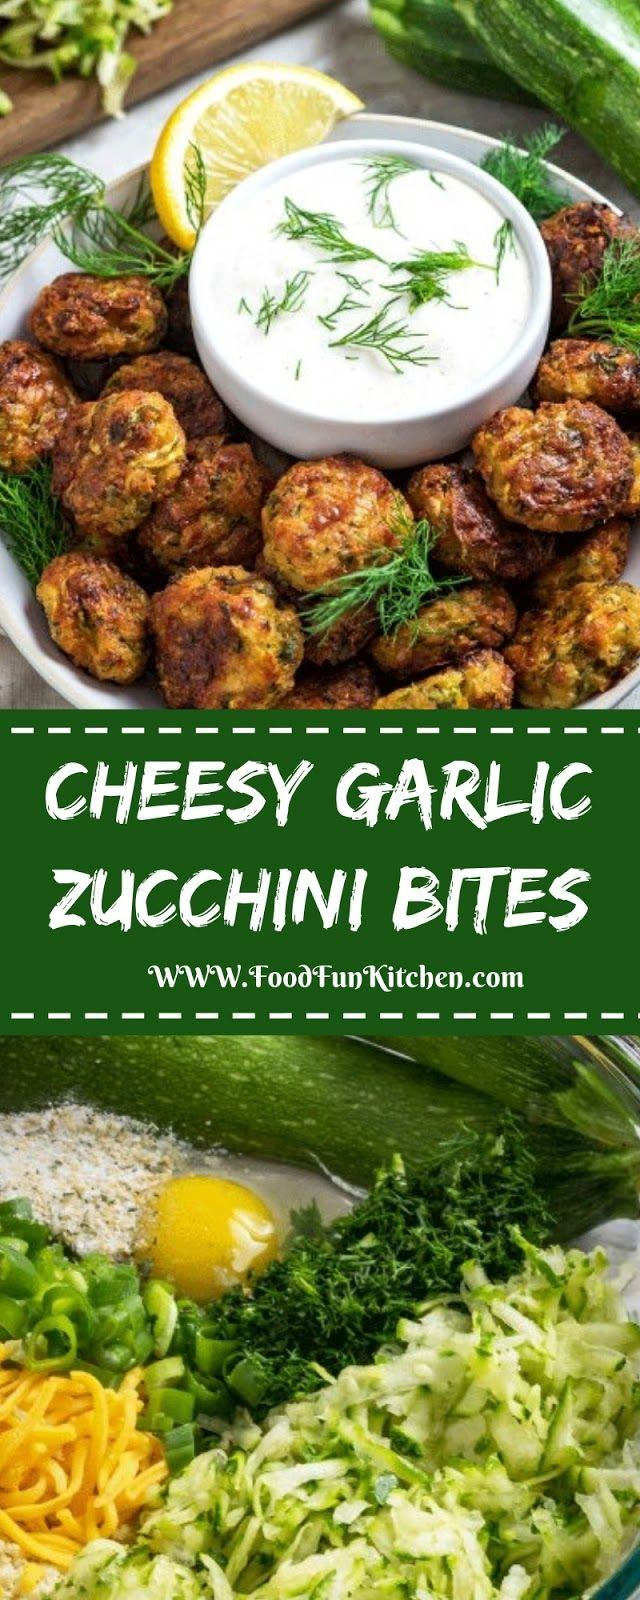 CHEESY GARLIC ZUCCHINI BITES is part of Zucchini bites - Acquire you ever seen cardinal grown men get reactive over zucchini  Because I bonk to say that was definitely a new live for me  Don't